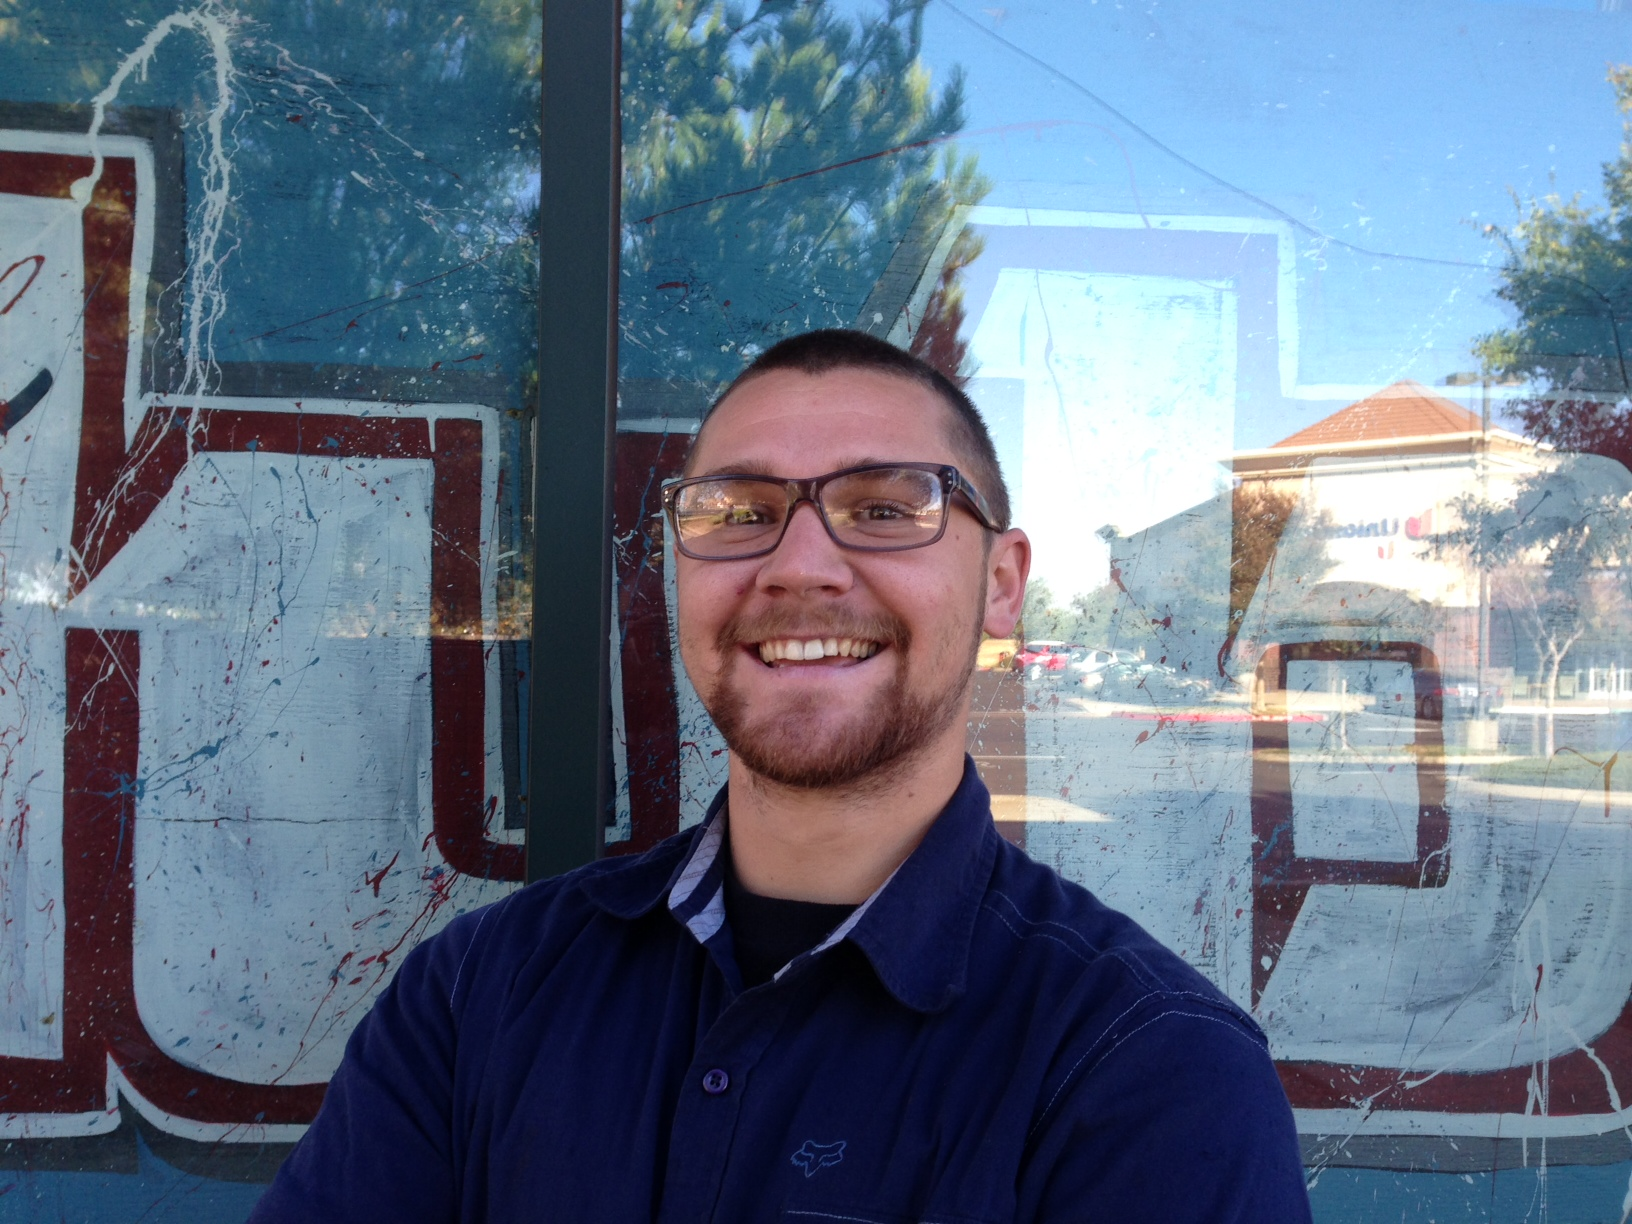 Name:  Dr. Richard Chapman   Nickname: Chappy  Role: Service Manager and leader of Mtb rides  Certifications: Certified Pro Bike Mechanic, Shimano Certified, Certified in Excellence, 6 Years Management in the Bike Industry   Factoid: Loves Mountain bikes, and mountain biking, he loves to travel to Tahoe and Santa Cruz and hit the trails